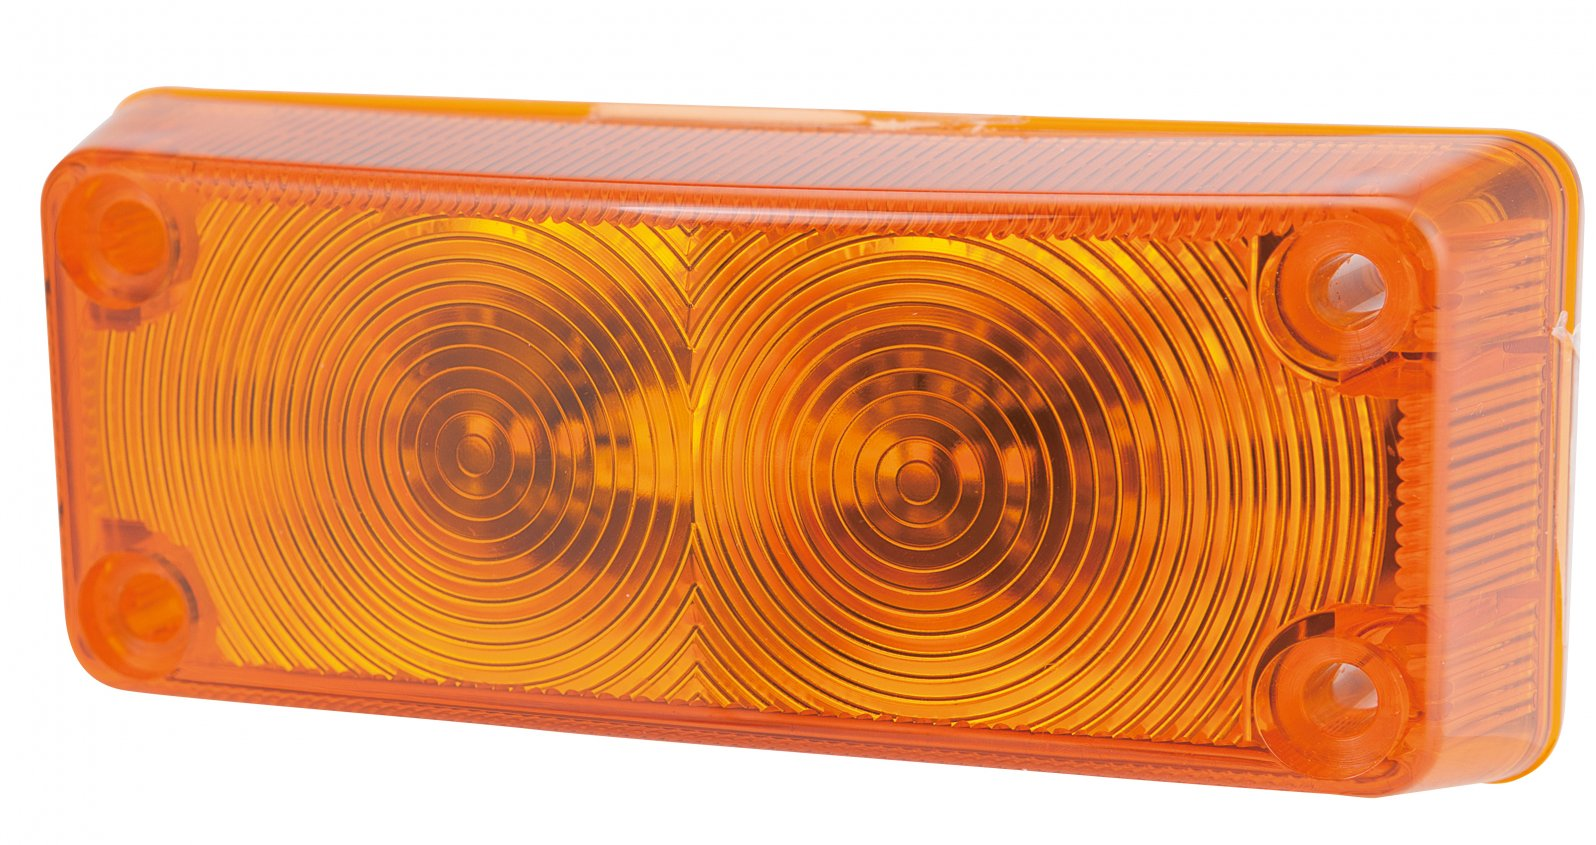 Bus Marker Lamp for Lighting Series made by Sirius Light Technology Co., LTD 南勝企業股份有限公司 - MatchSupplier.com